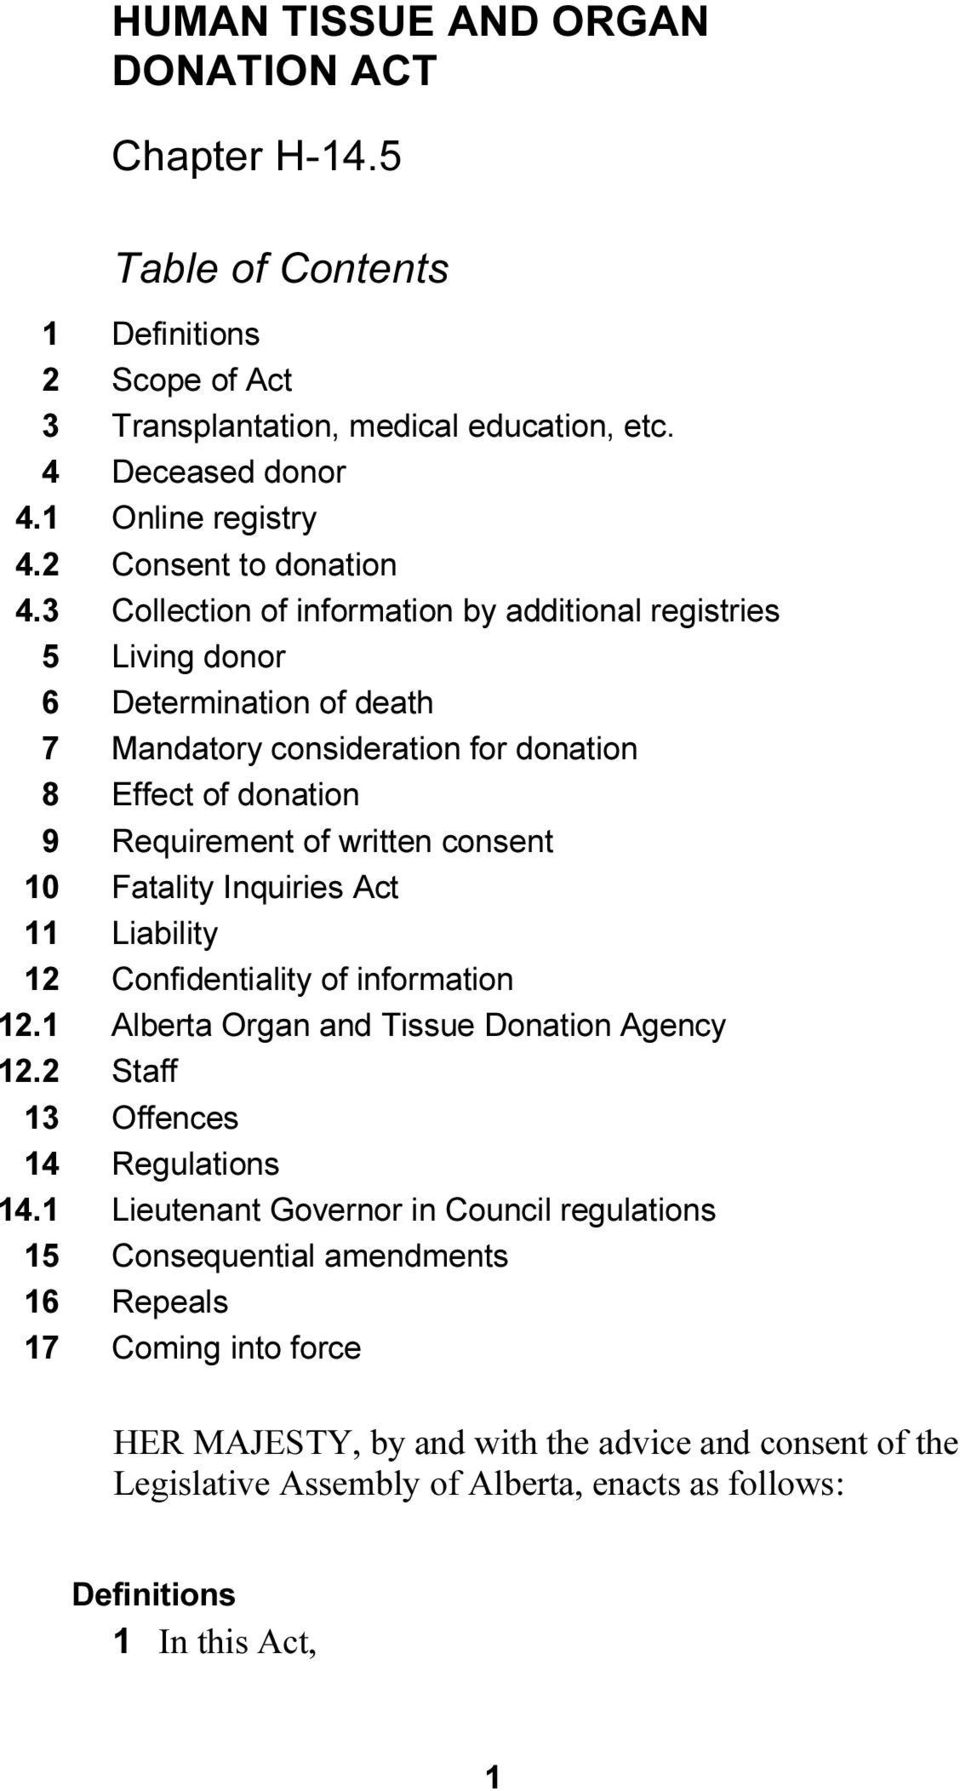 consent 10 Fatality Inquiries Act 11 Liability 12 Confidentiality of information 12.1 Alberta Organ and Tissue Donation Agency 12.2 Staff 13 Offences 14 Regulations 14.